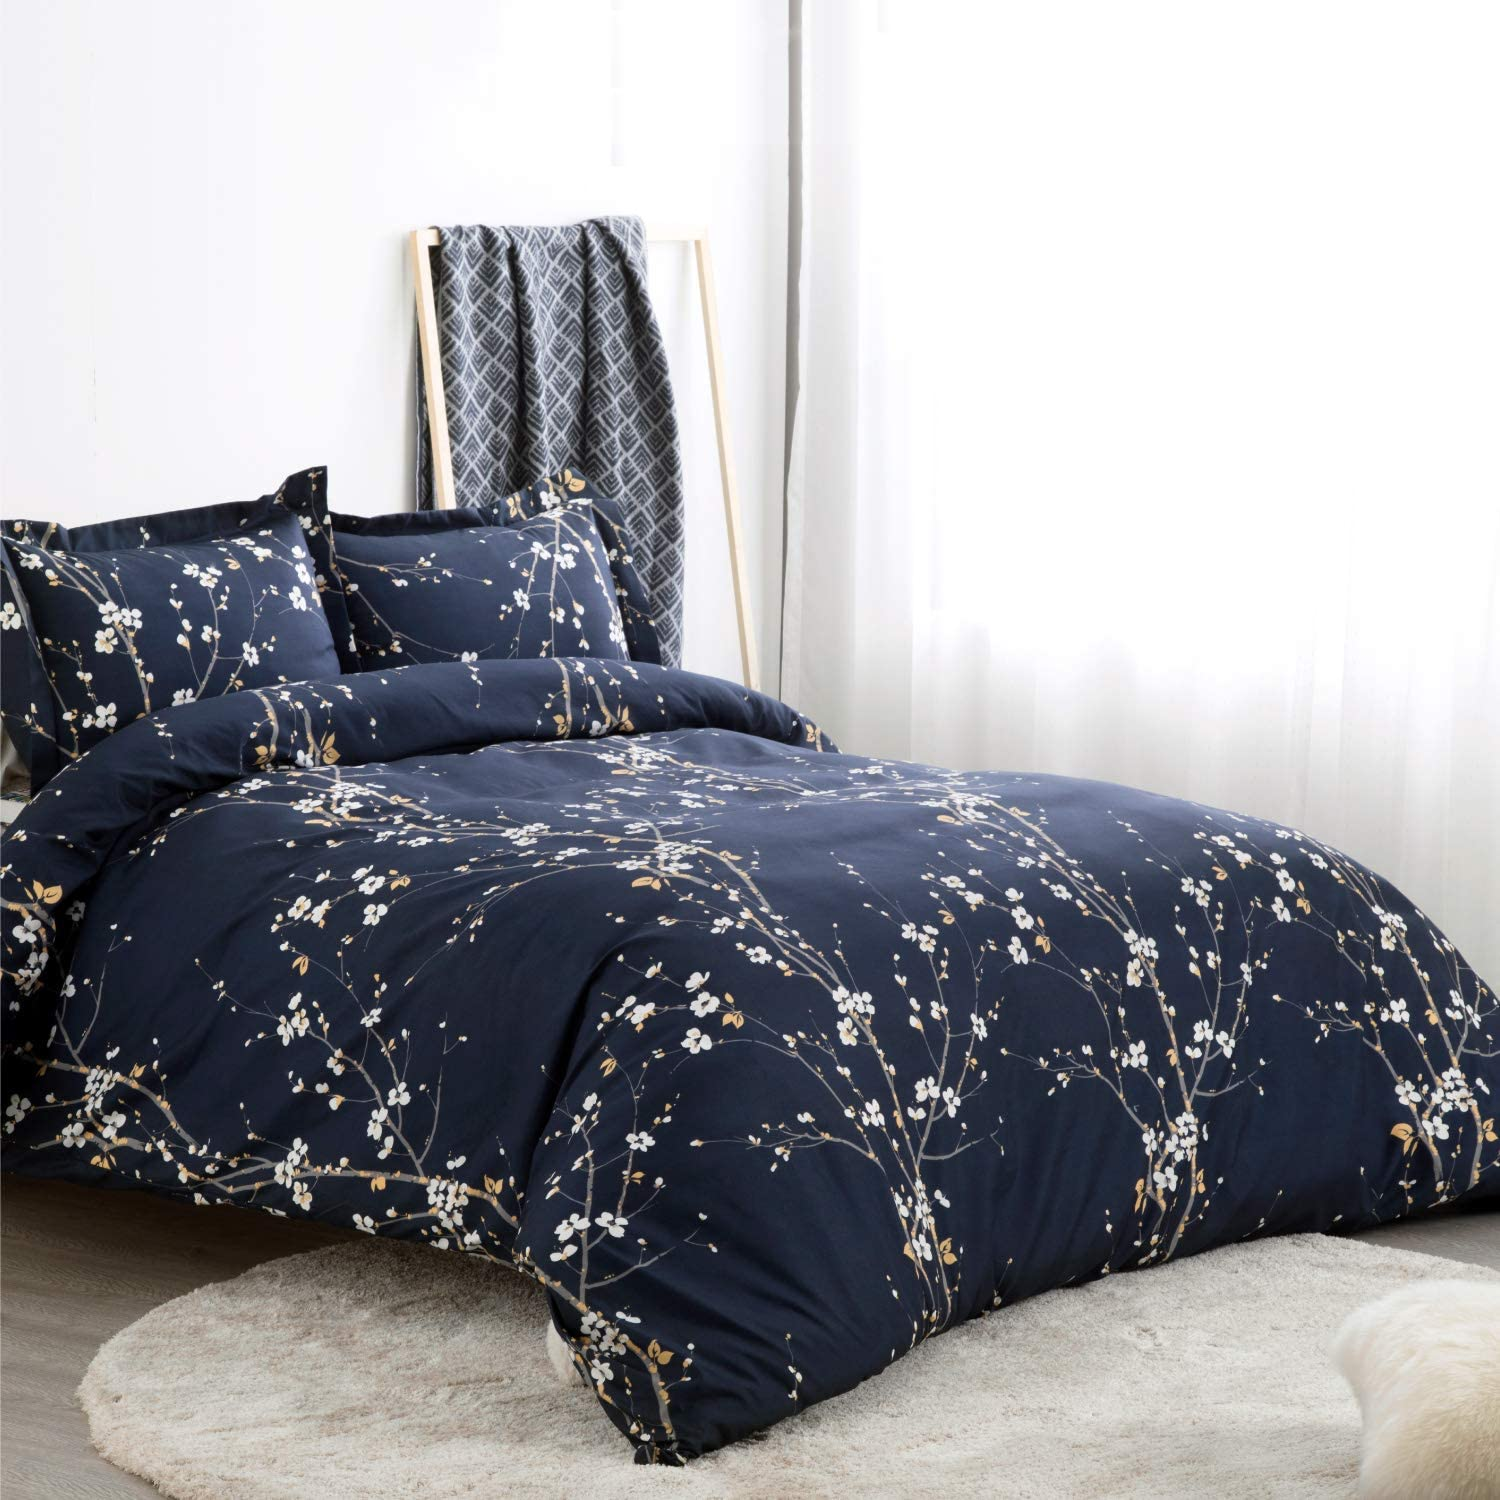 Bedsure Spring Bloom Pattern Bedding Set Full/Queen (90x90 inches) Duvet Cover Set Navy Printed Modern Comforter Cover-3 Pieces-Ultra Soft Hypoallergenic Microfiber: Home & Kitchen